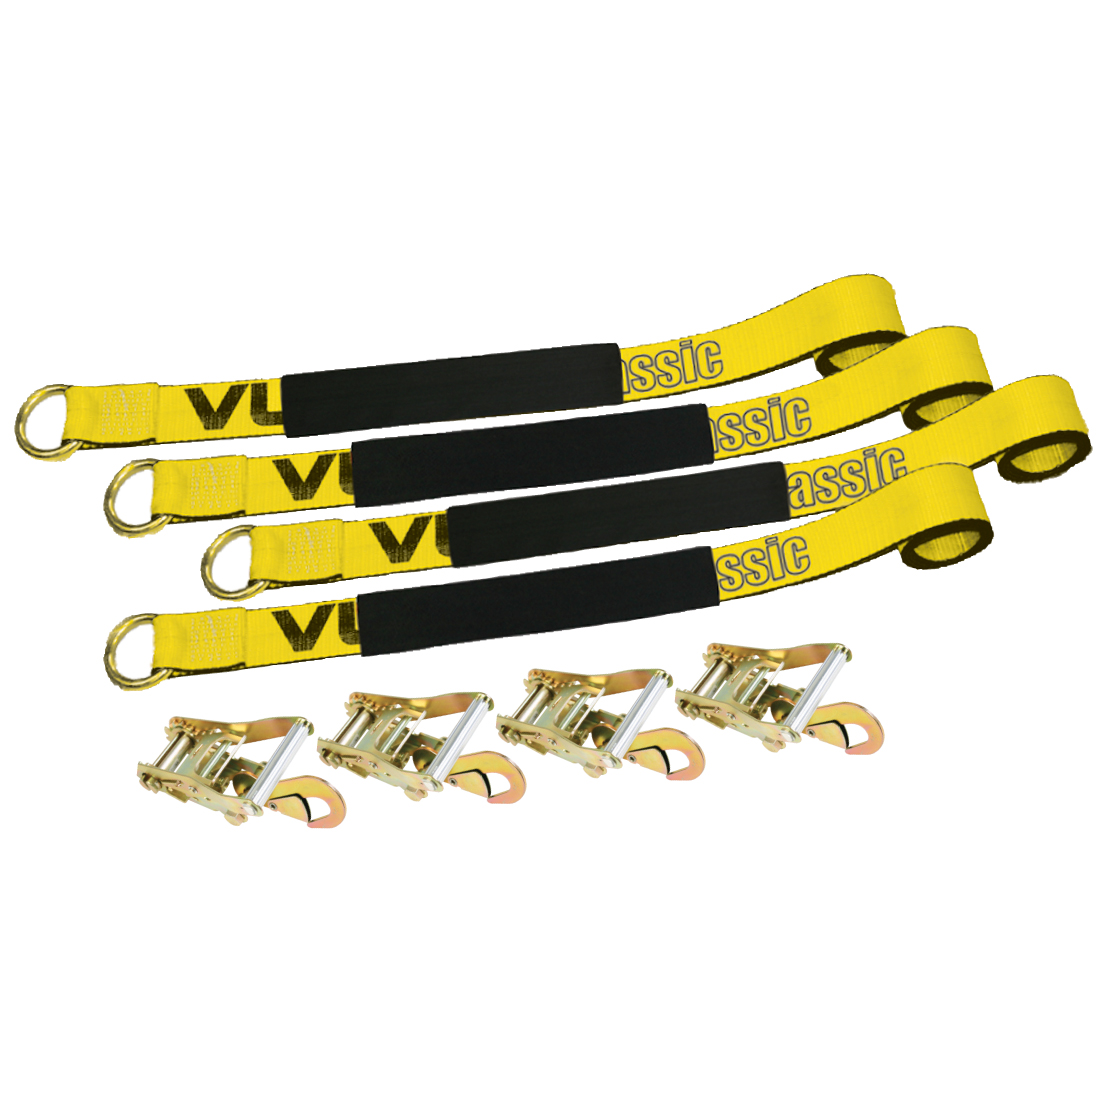 "Vulcan 2"" x 144"" Exotic Car Rim Tie Downs w/Ratchets - 3300 lbs. SWL, 4 Pack"